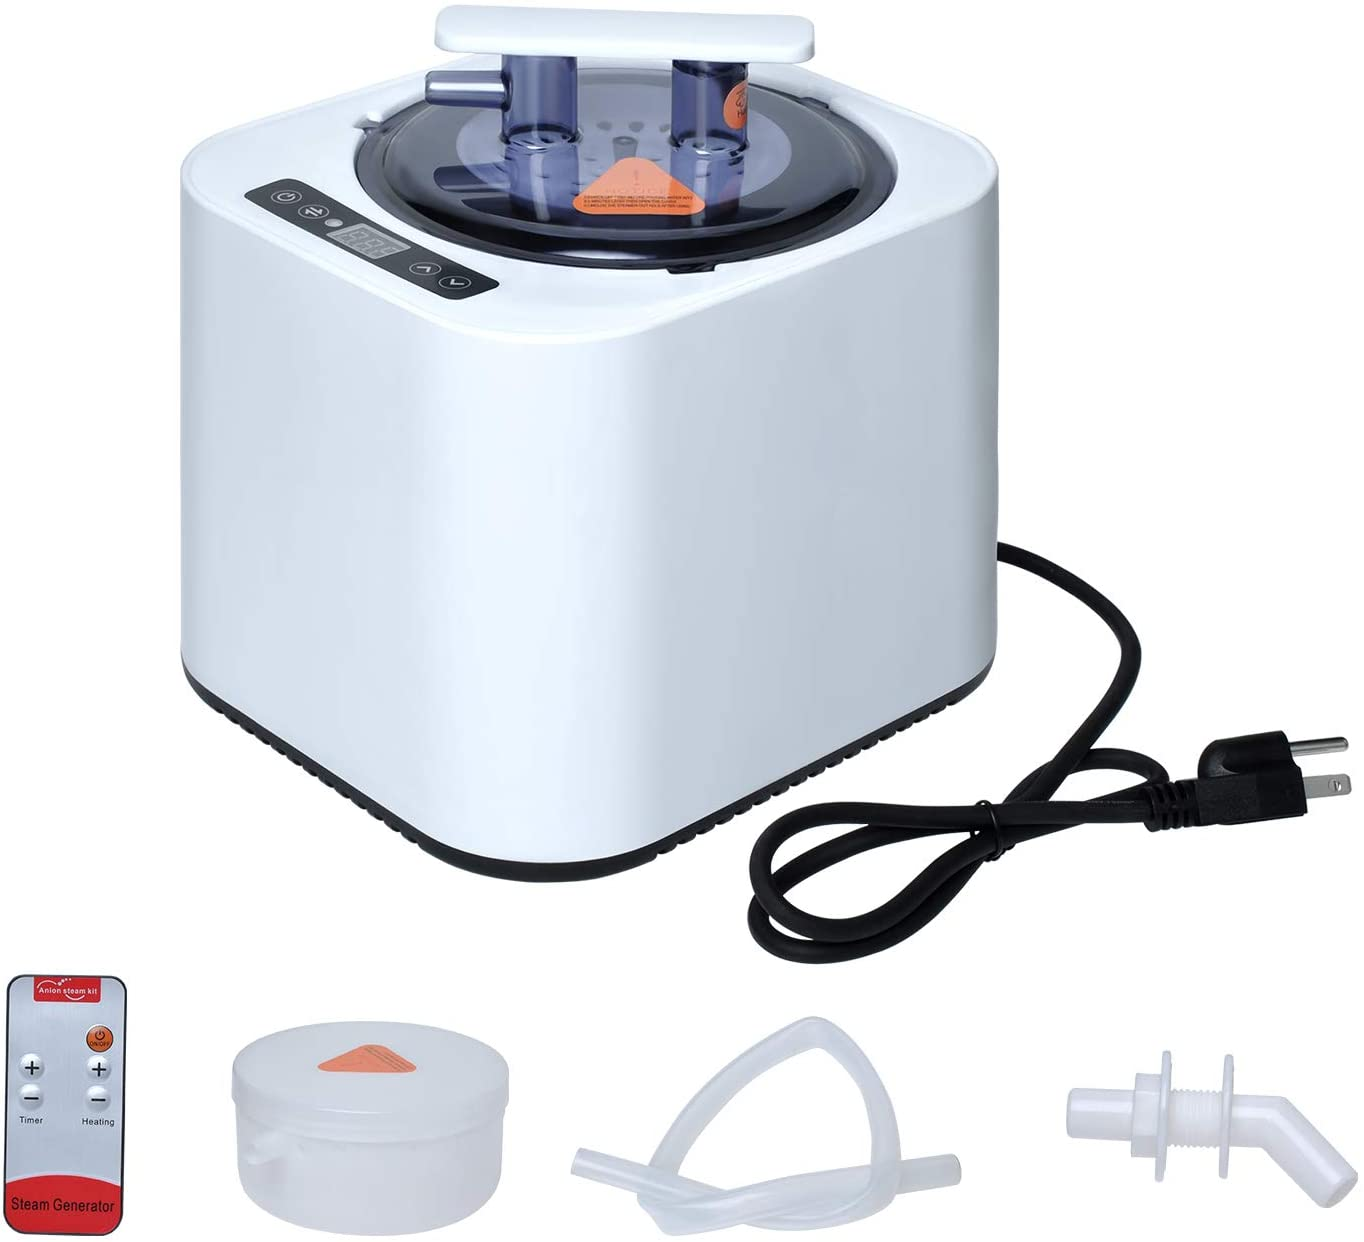 Wadoy Portable Sauna Steamer Pot, Steam Generator for Sauna, Home SPA Fumigation Steam Machine for Body Detox with Smart Touch Button, Timer Display and Remote Control, 2L 110V